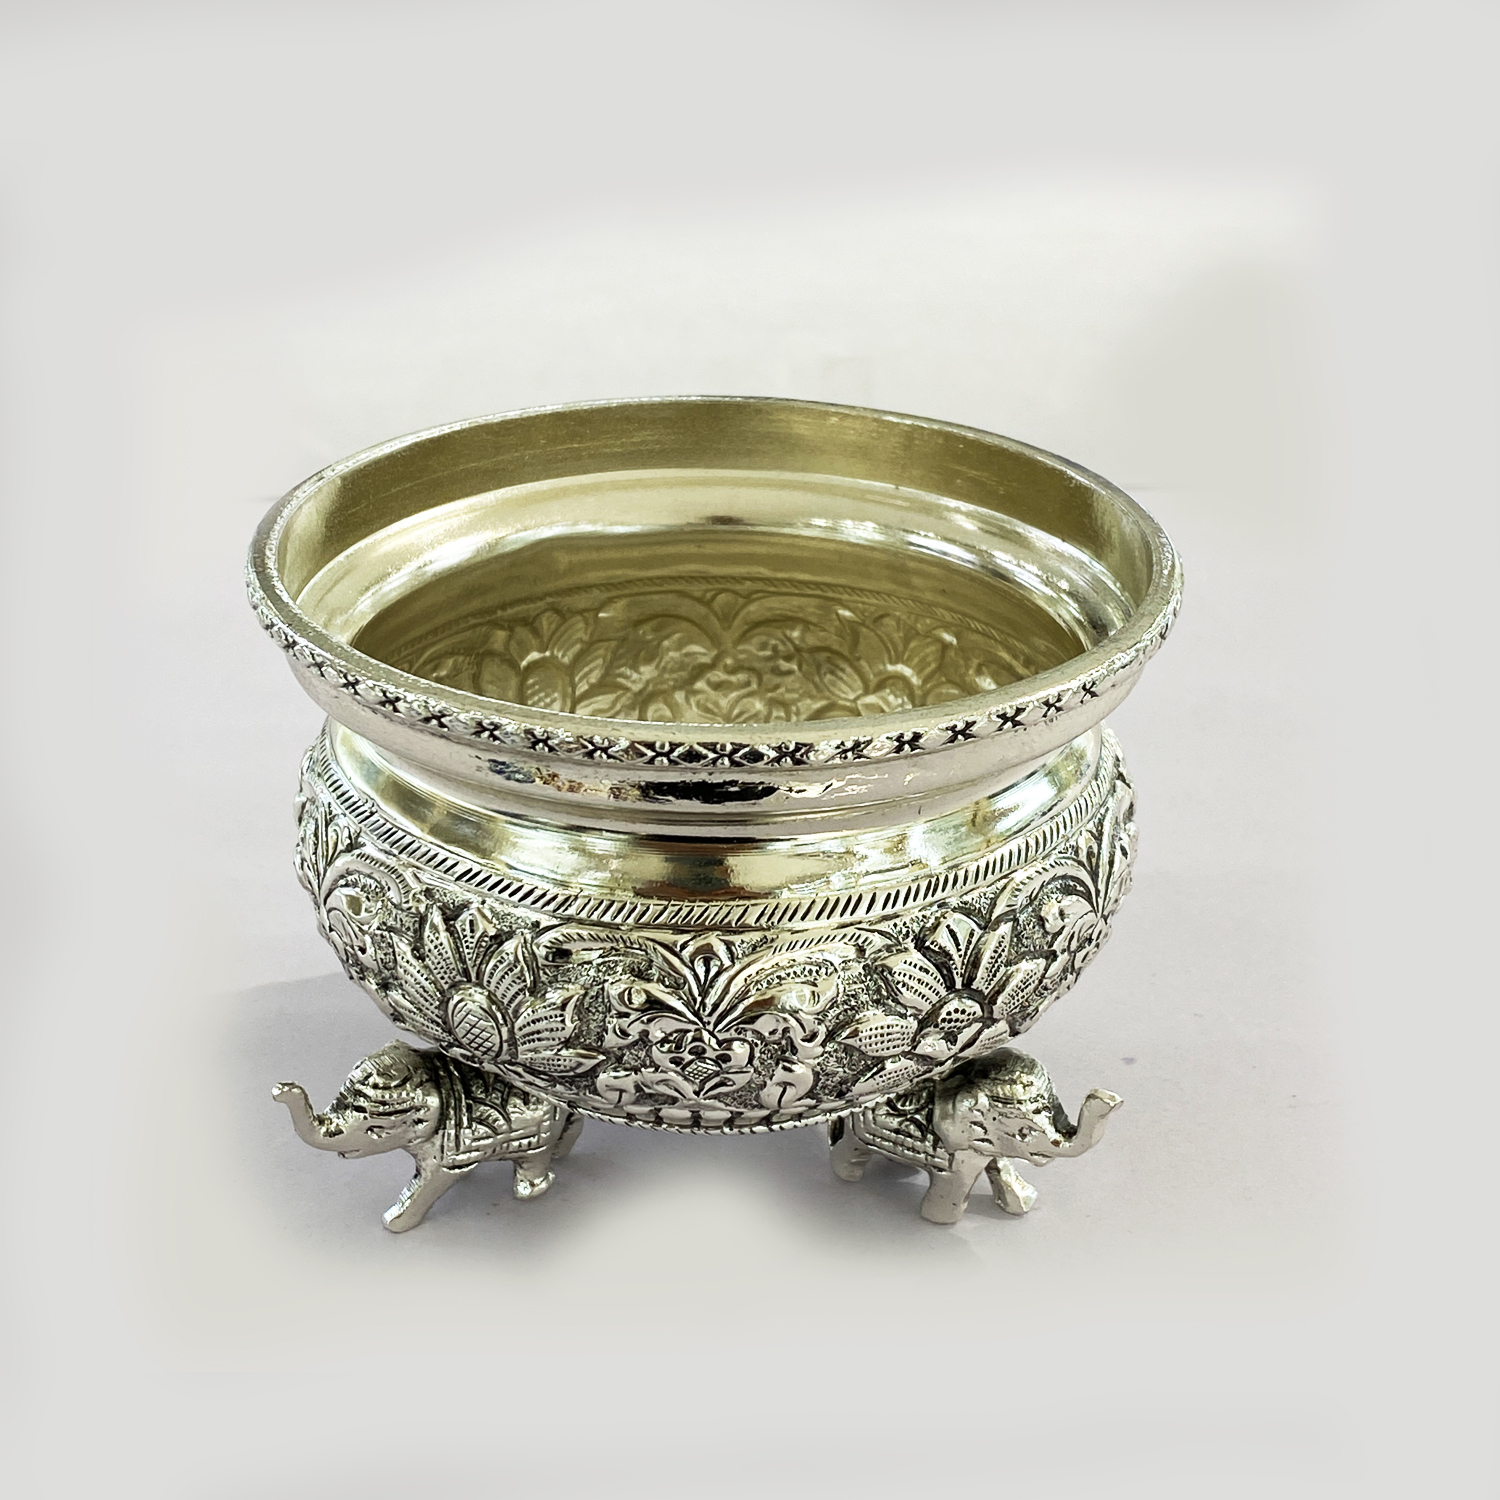 Antique Silver Plated Bowl or Urli   4.2 Inch